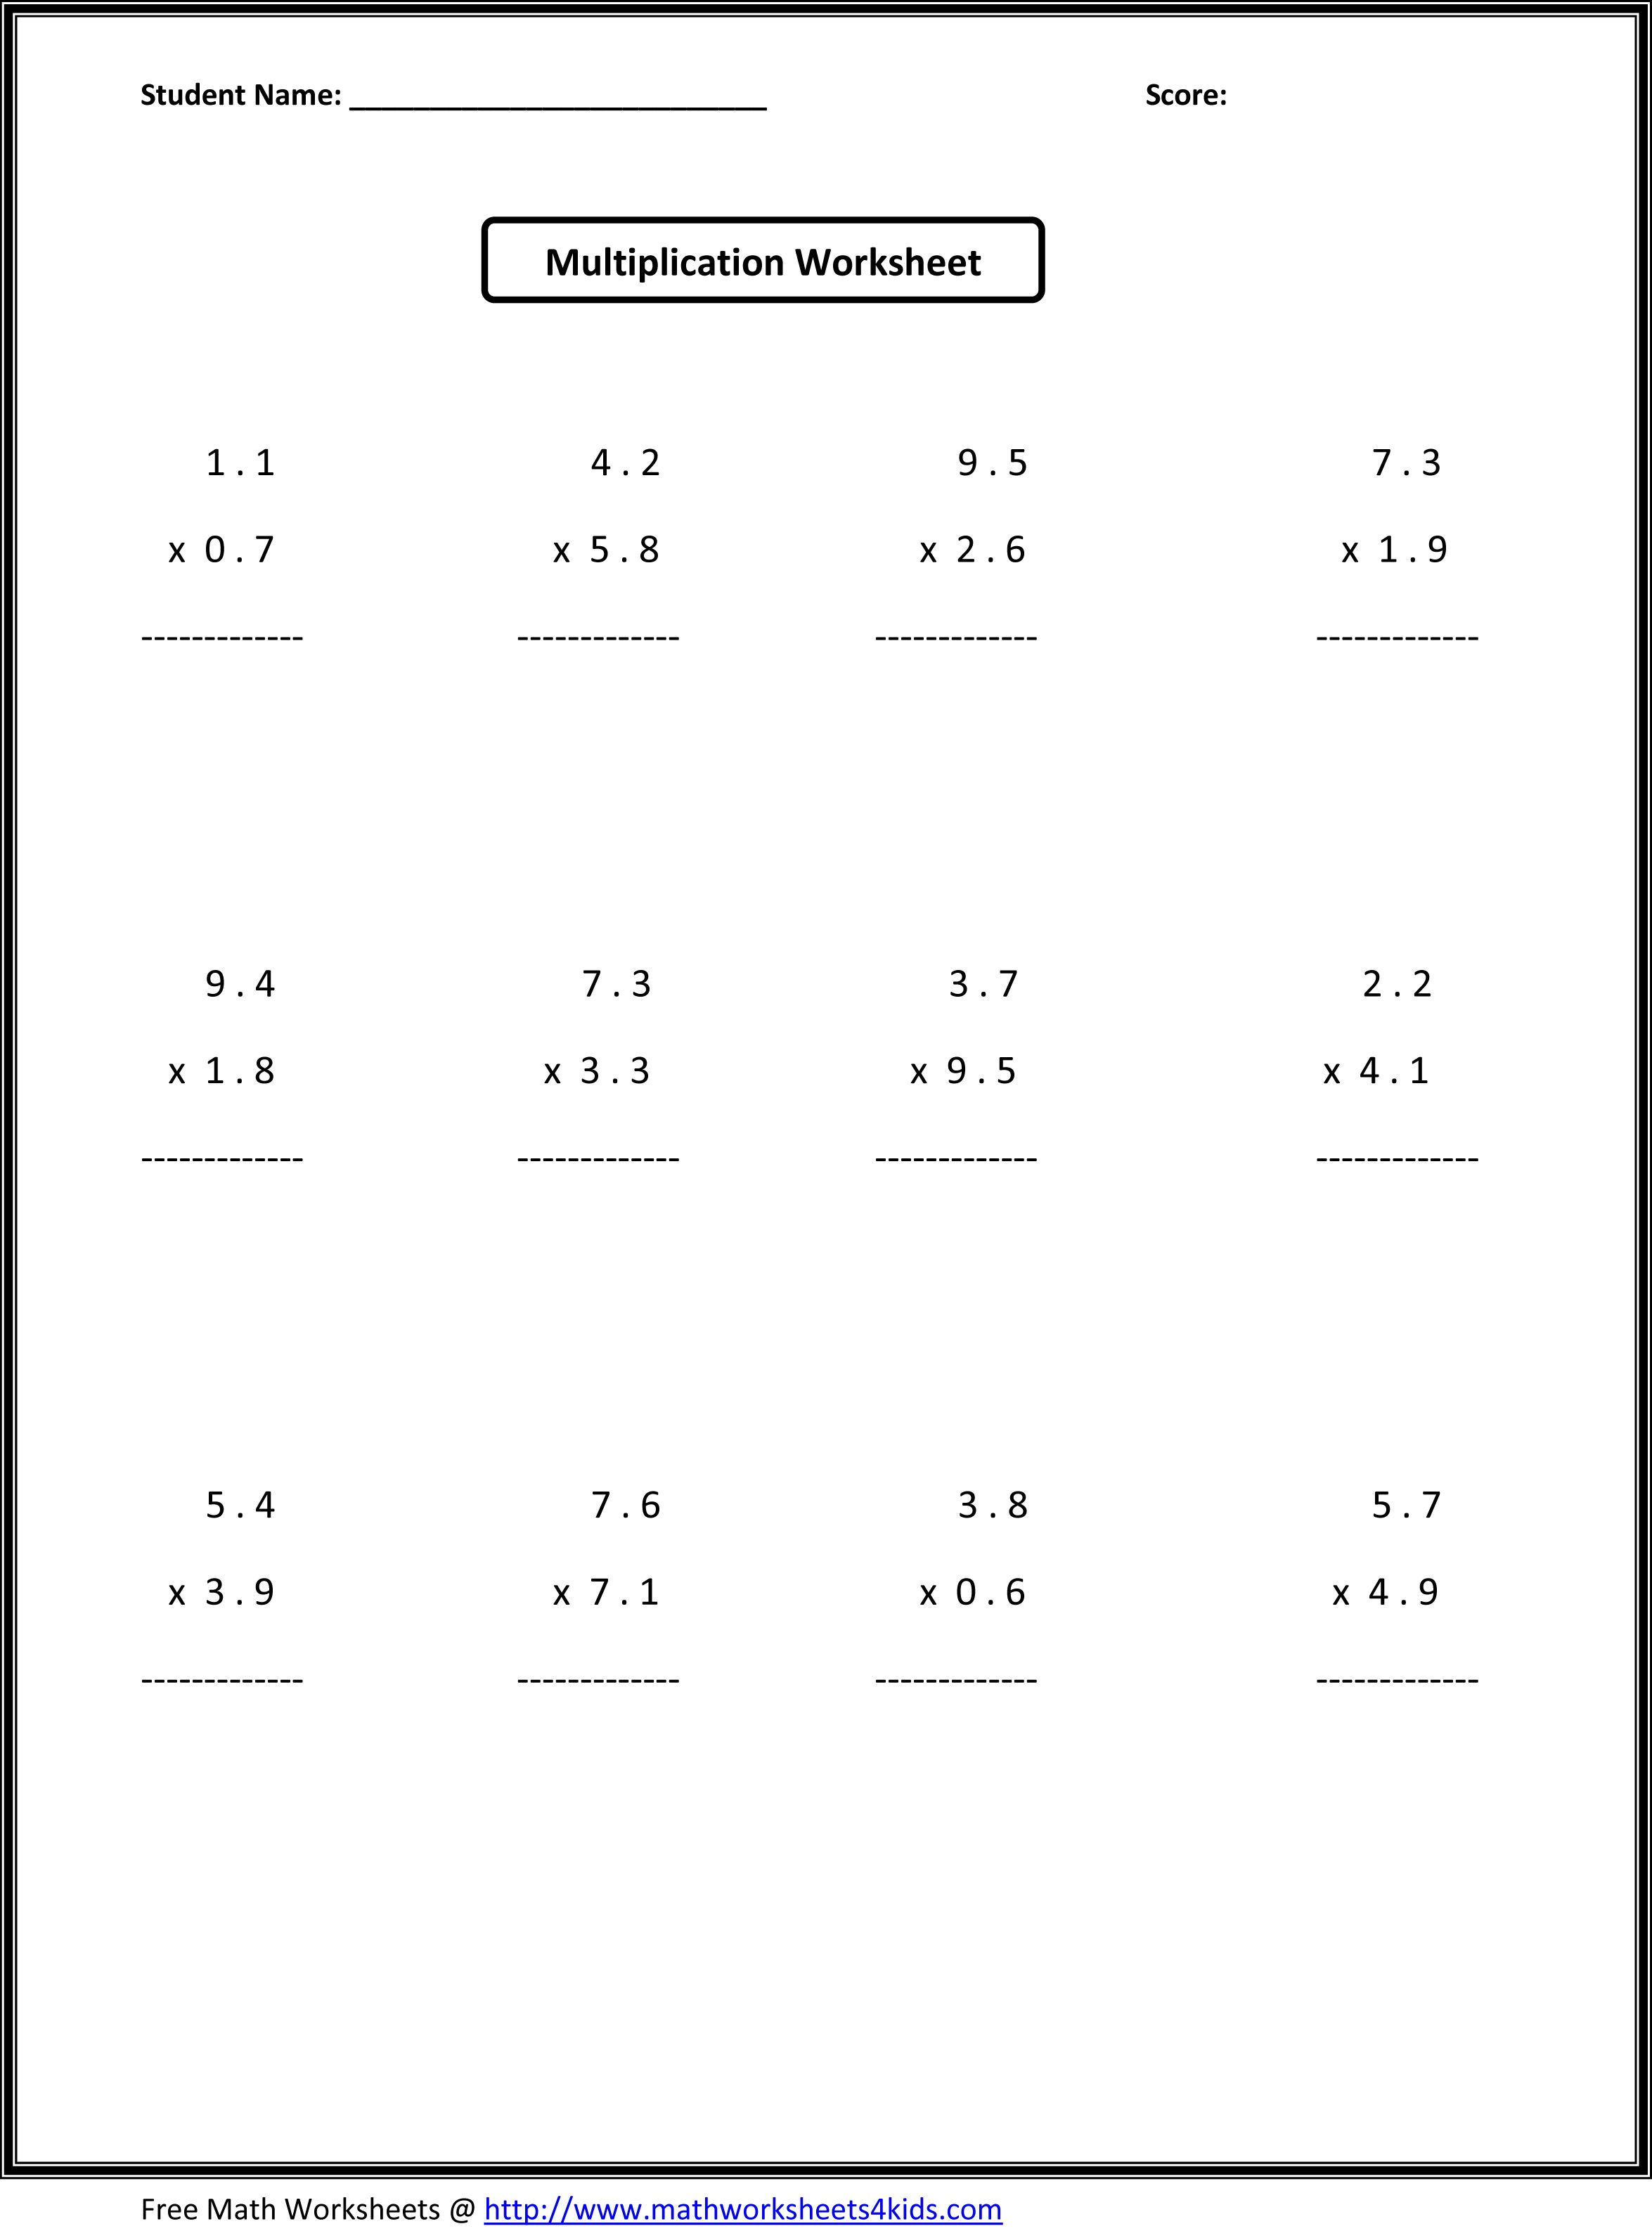 Printables 6th Grade Math Practice Worksheets 7th grade algebra worksheets math places sixth have ratio multiplying and dividing fractions algebraic expressions equations inequalities geomet